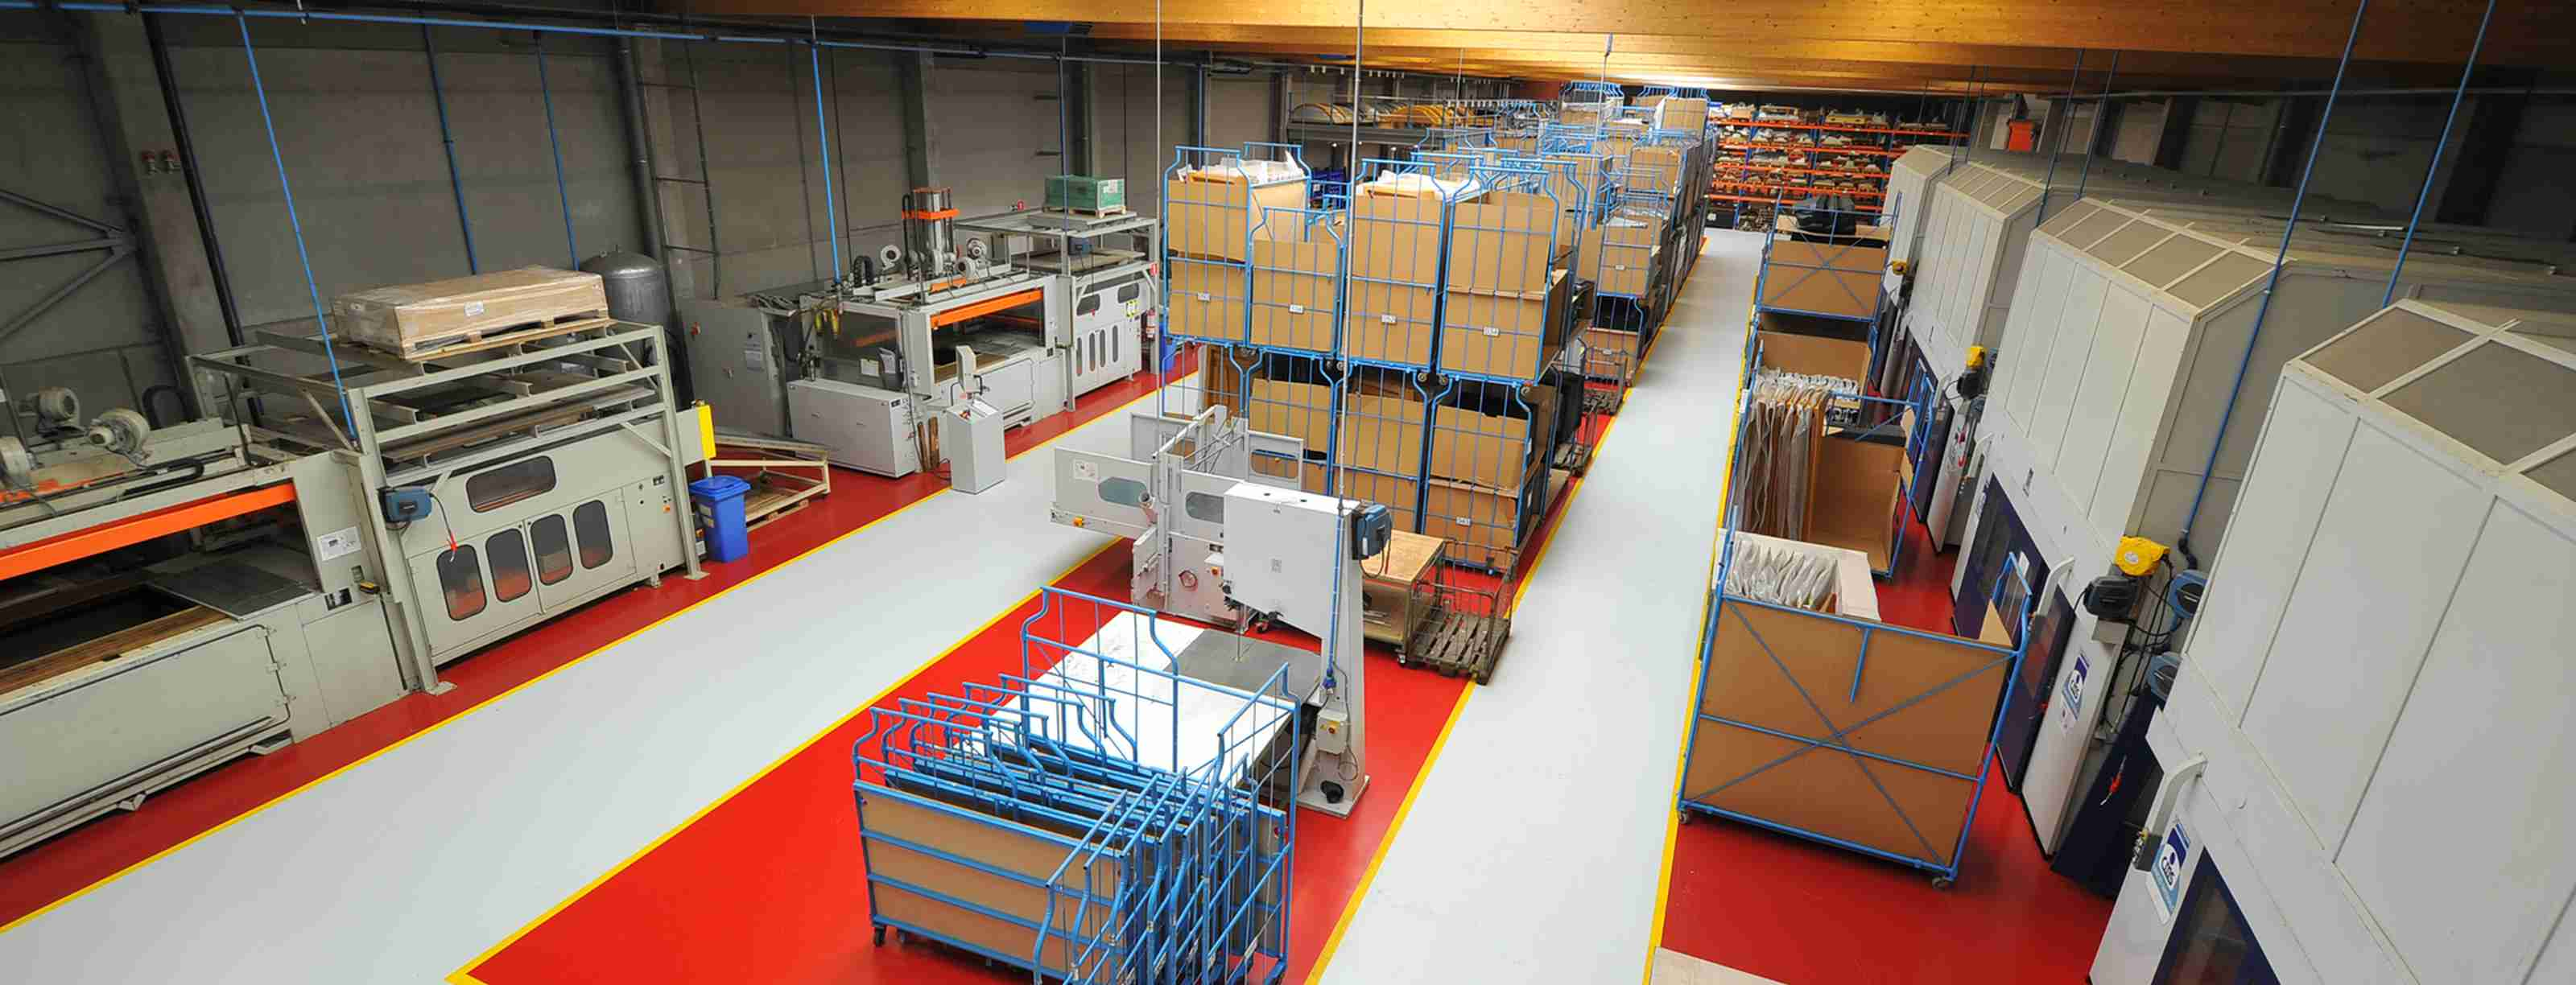 Thermoforming, folding, milling & Assembly